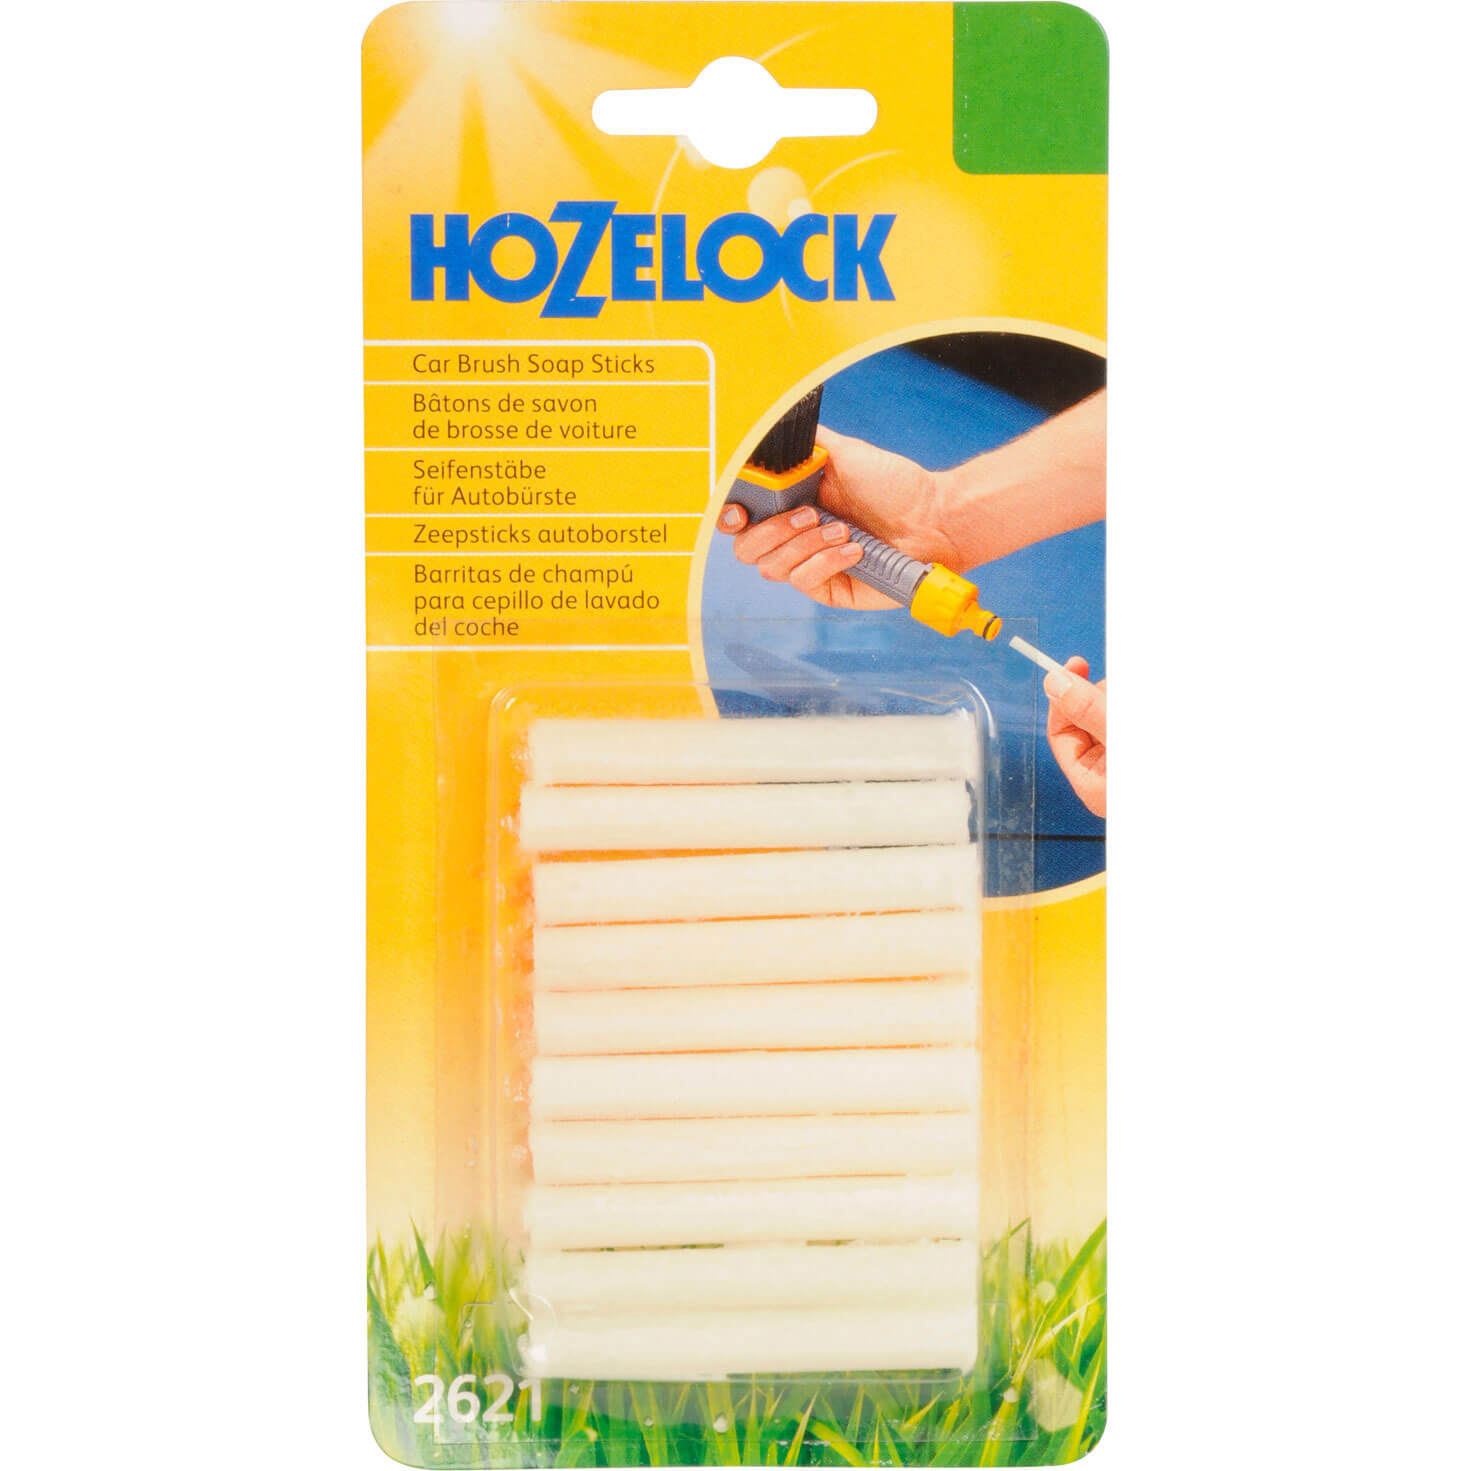 Image of Hozelock Car Shampoo Soap Sticks